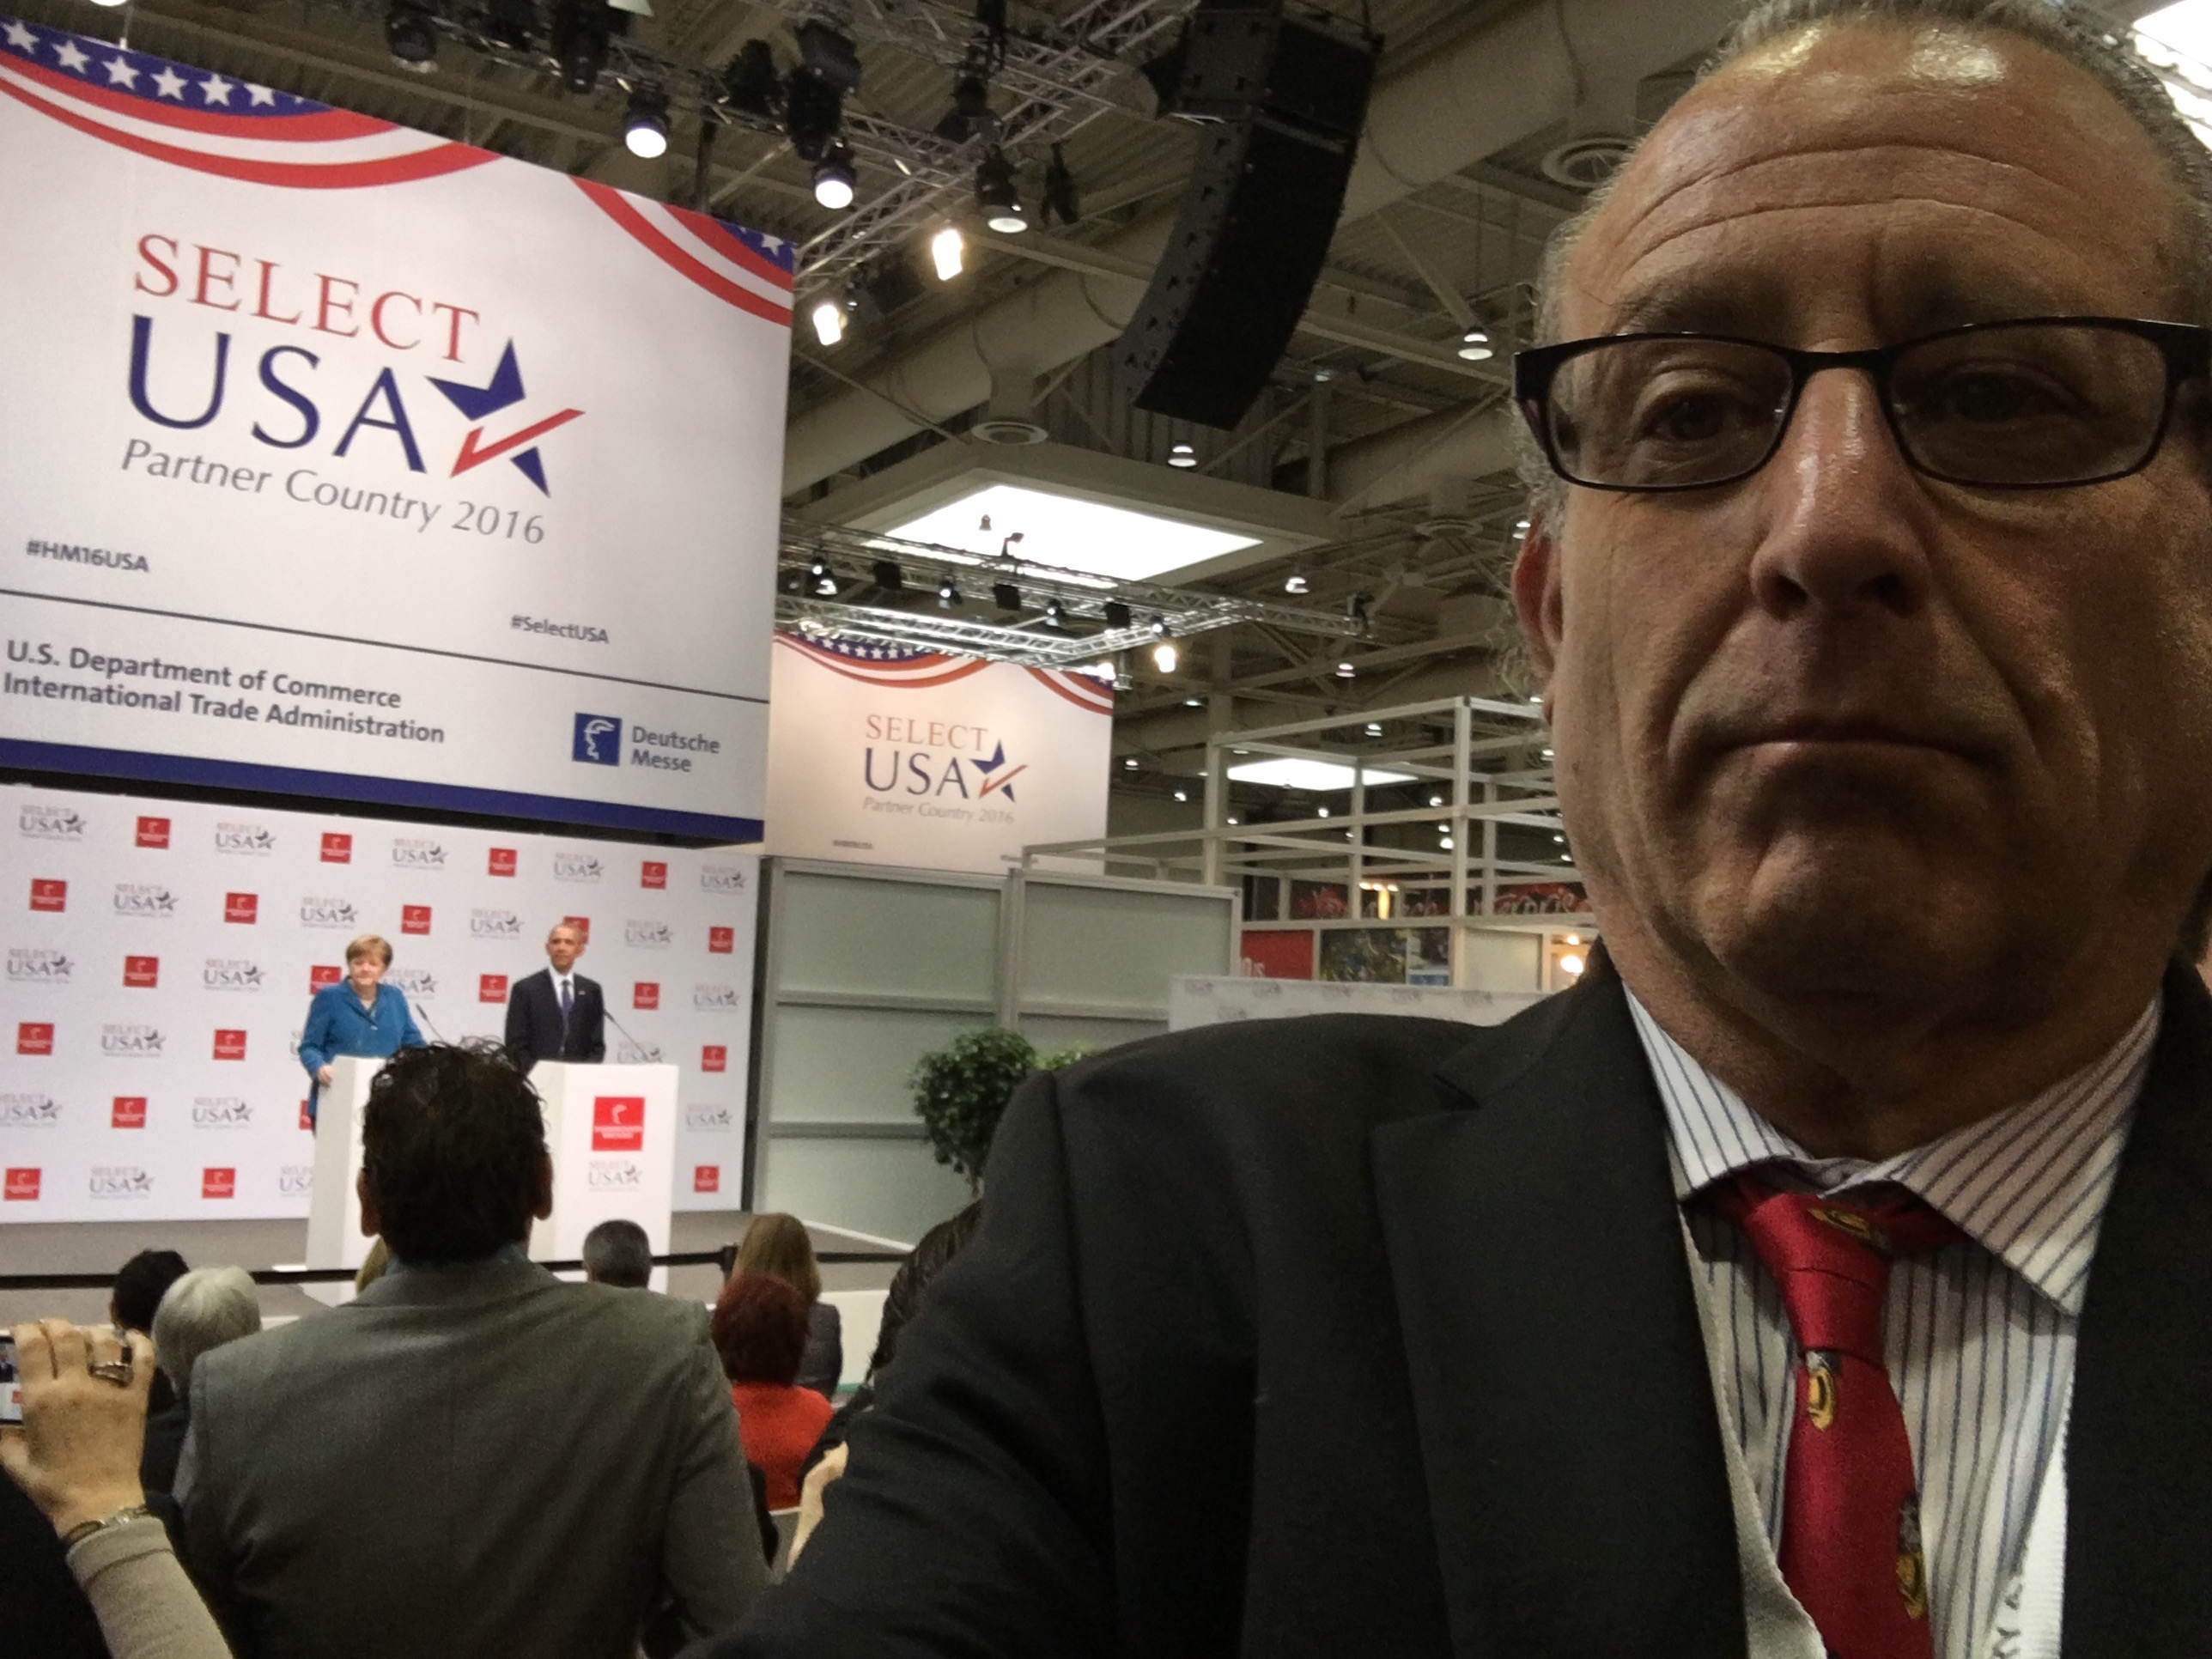 Bob LeVitus at Hannover Messe